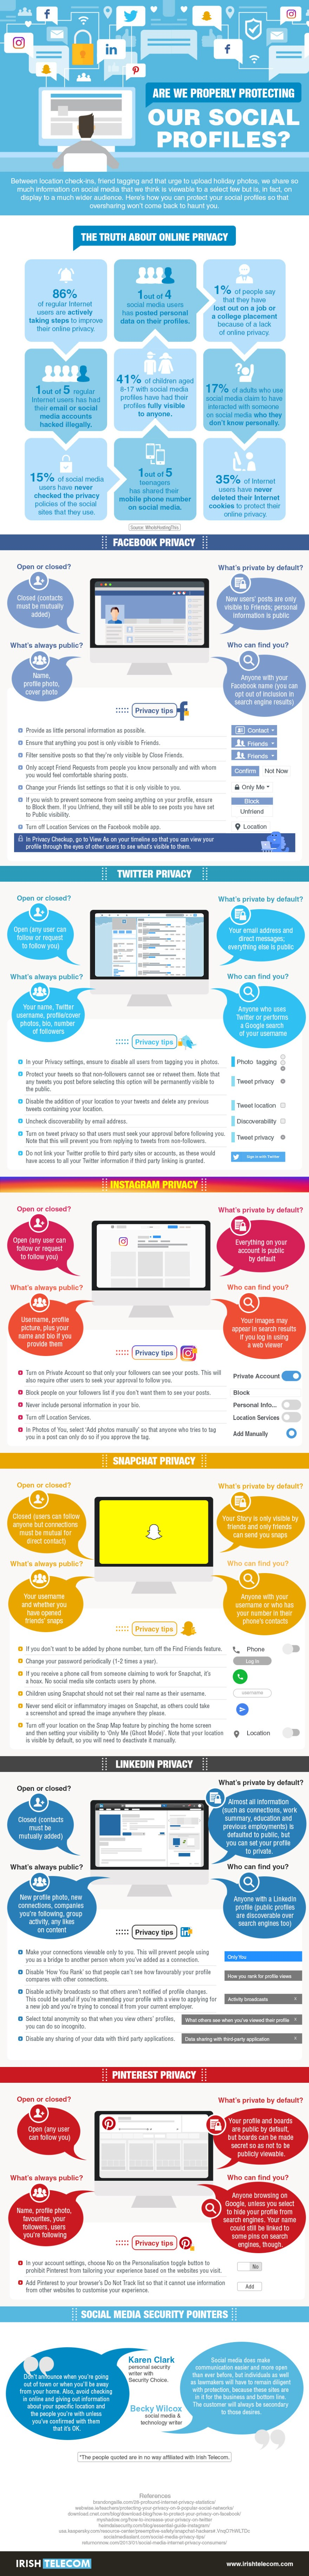 Social Media Infographic - Protect Your Privacy